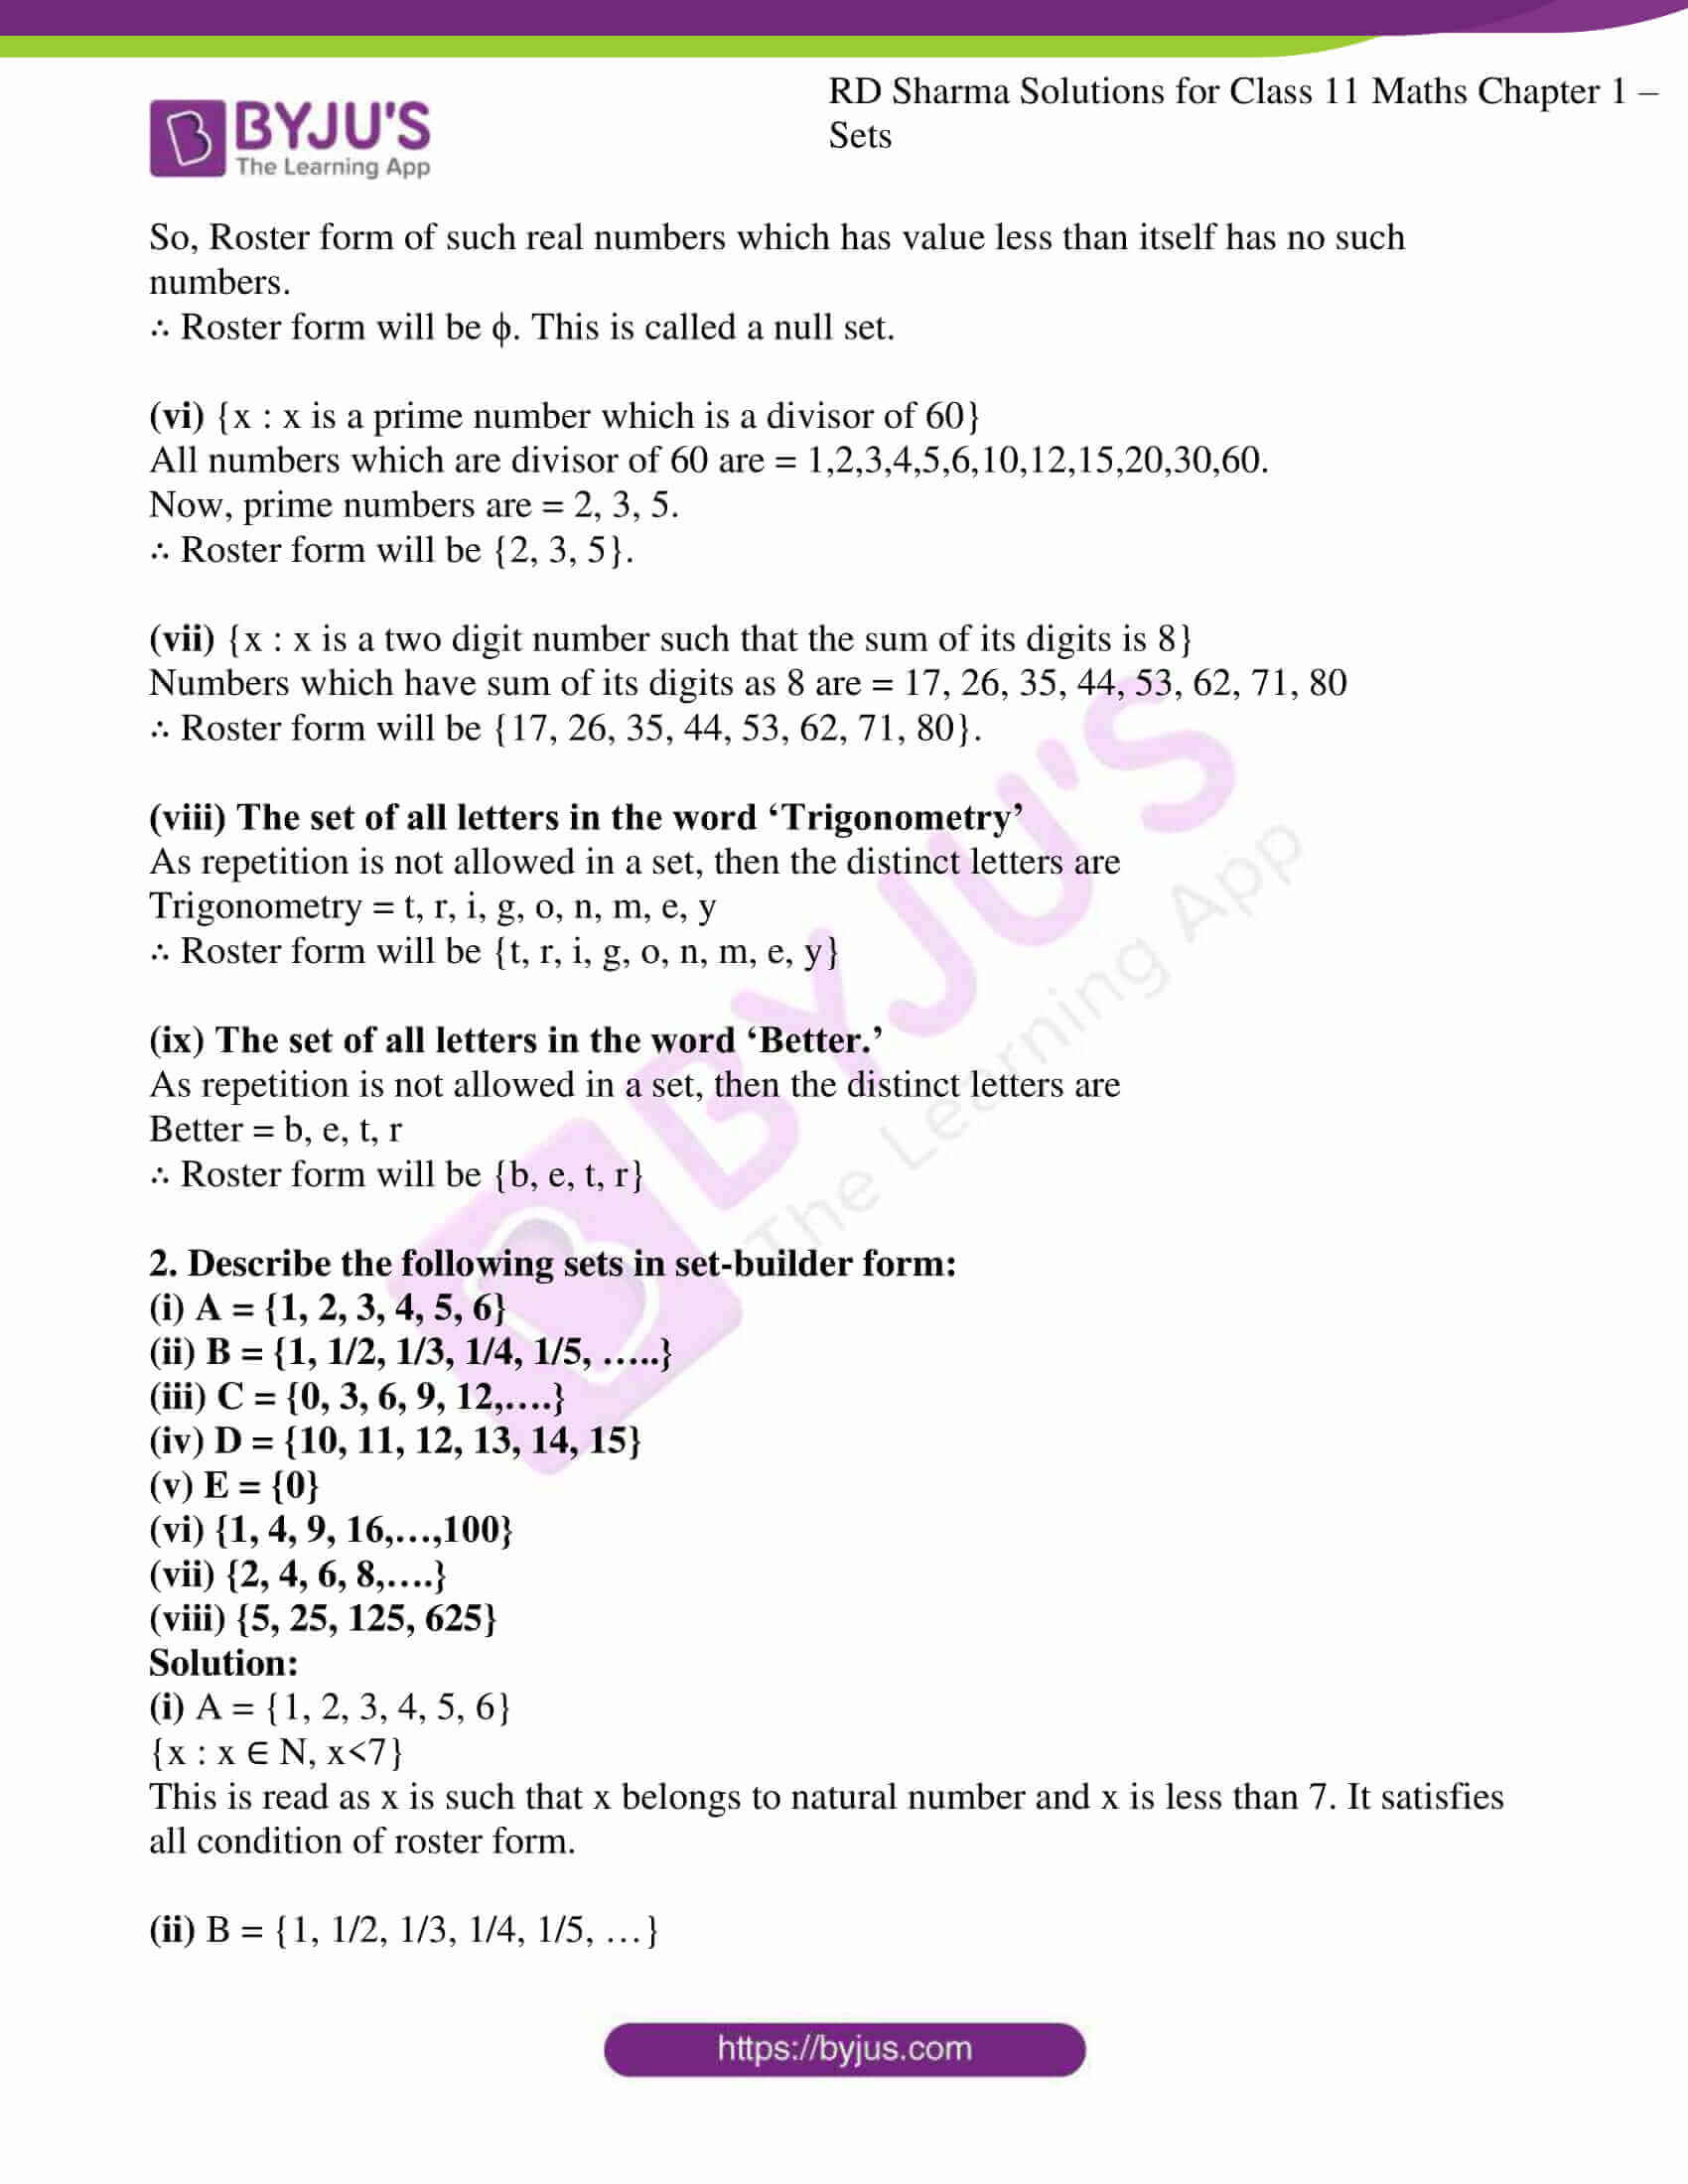 rd sharma class 11 maths ch 1 sets ex 2 2